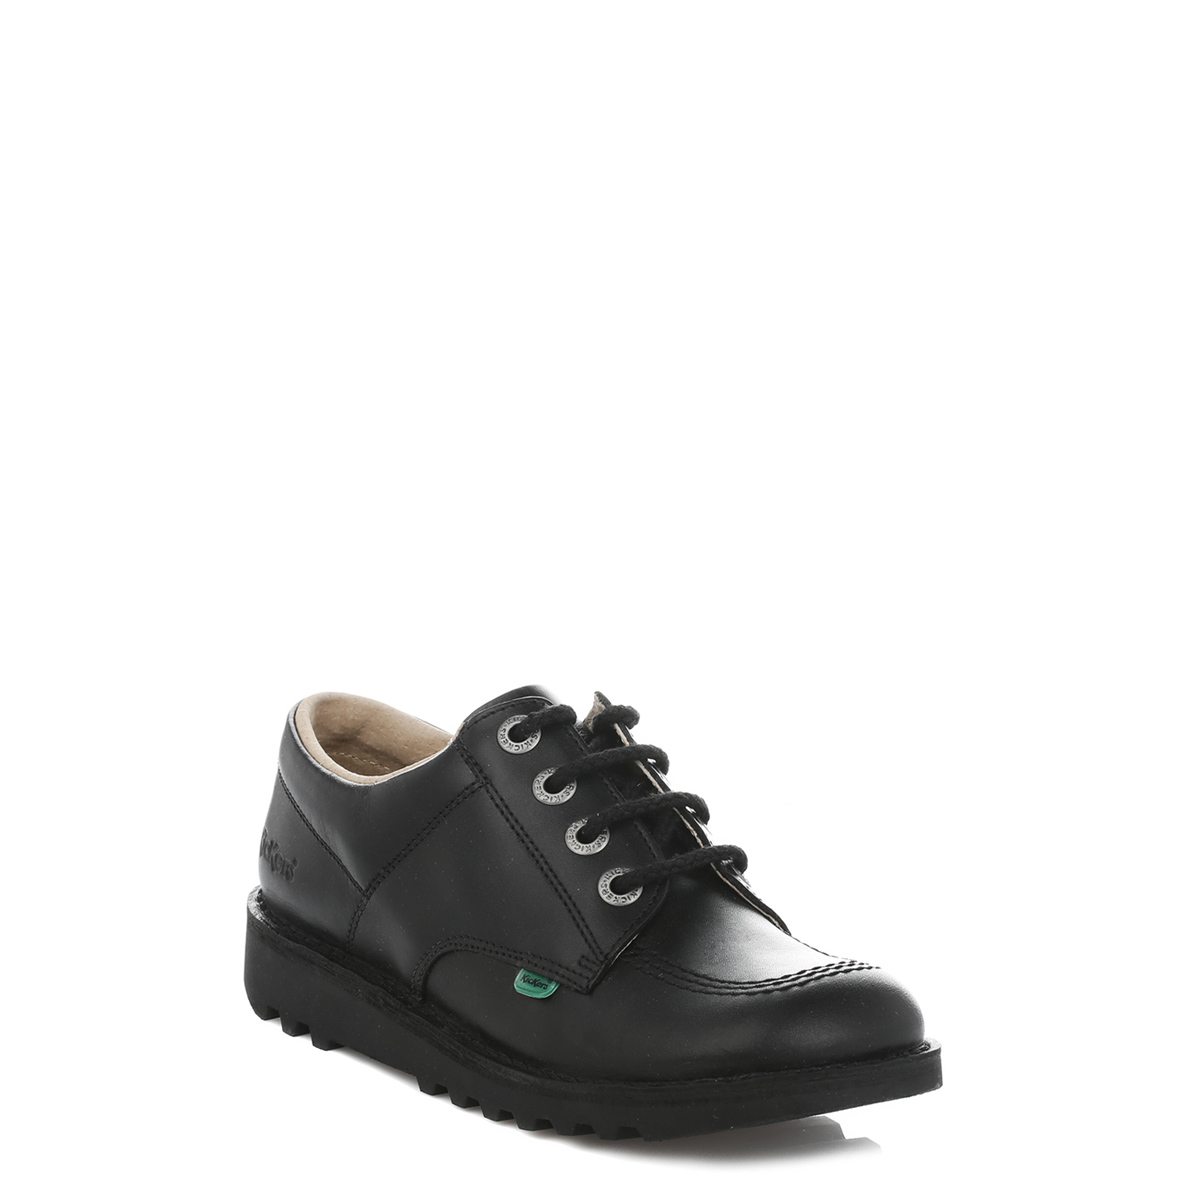 What Width Are Kickers Shoes For Kids School